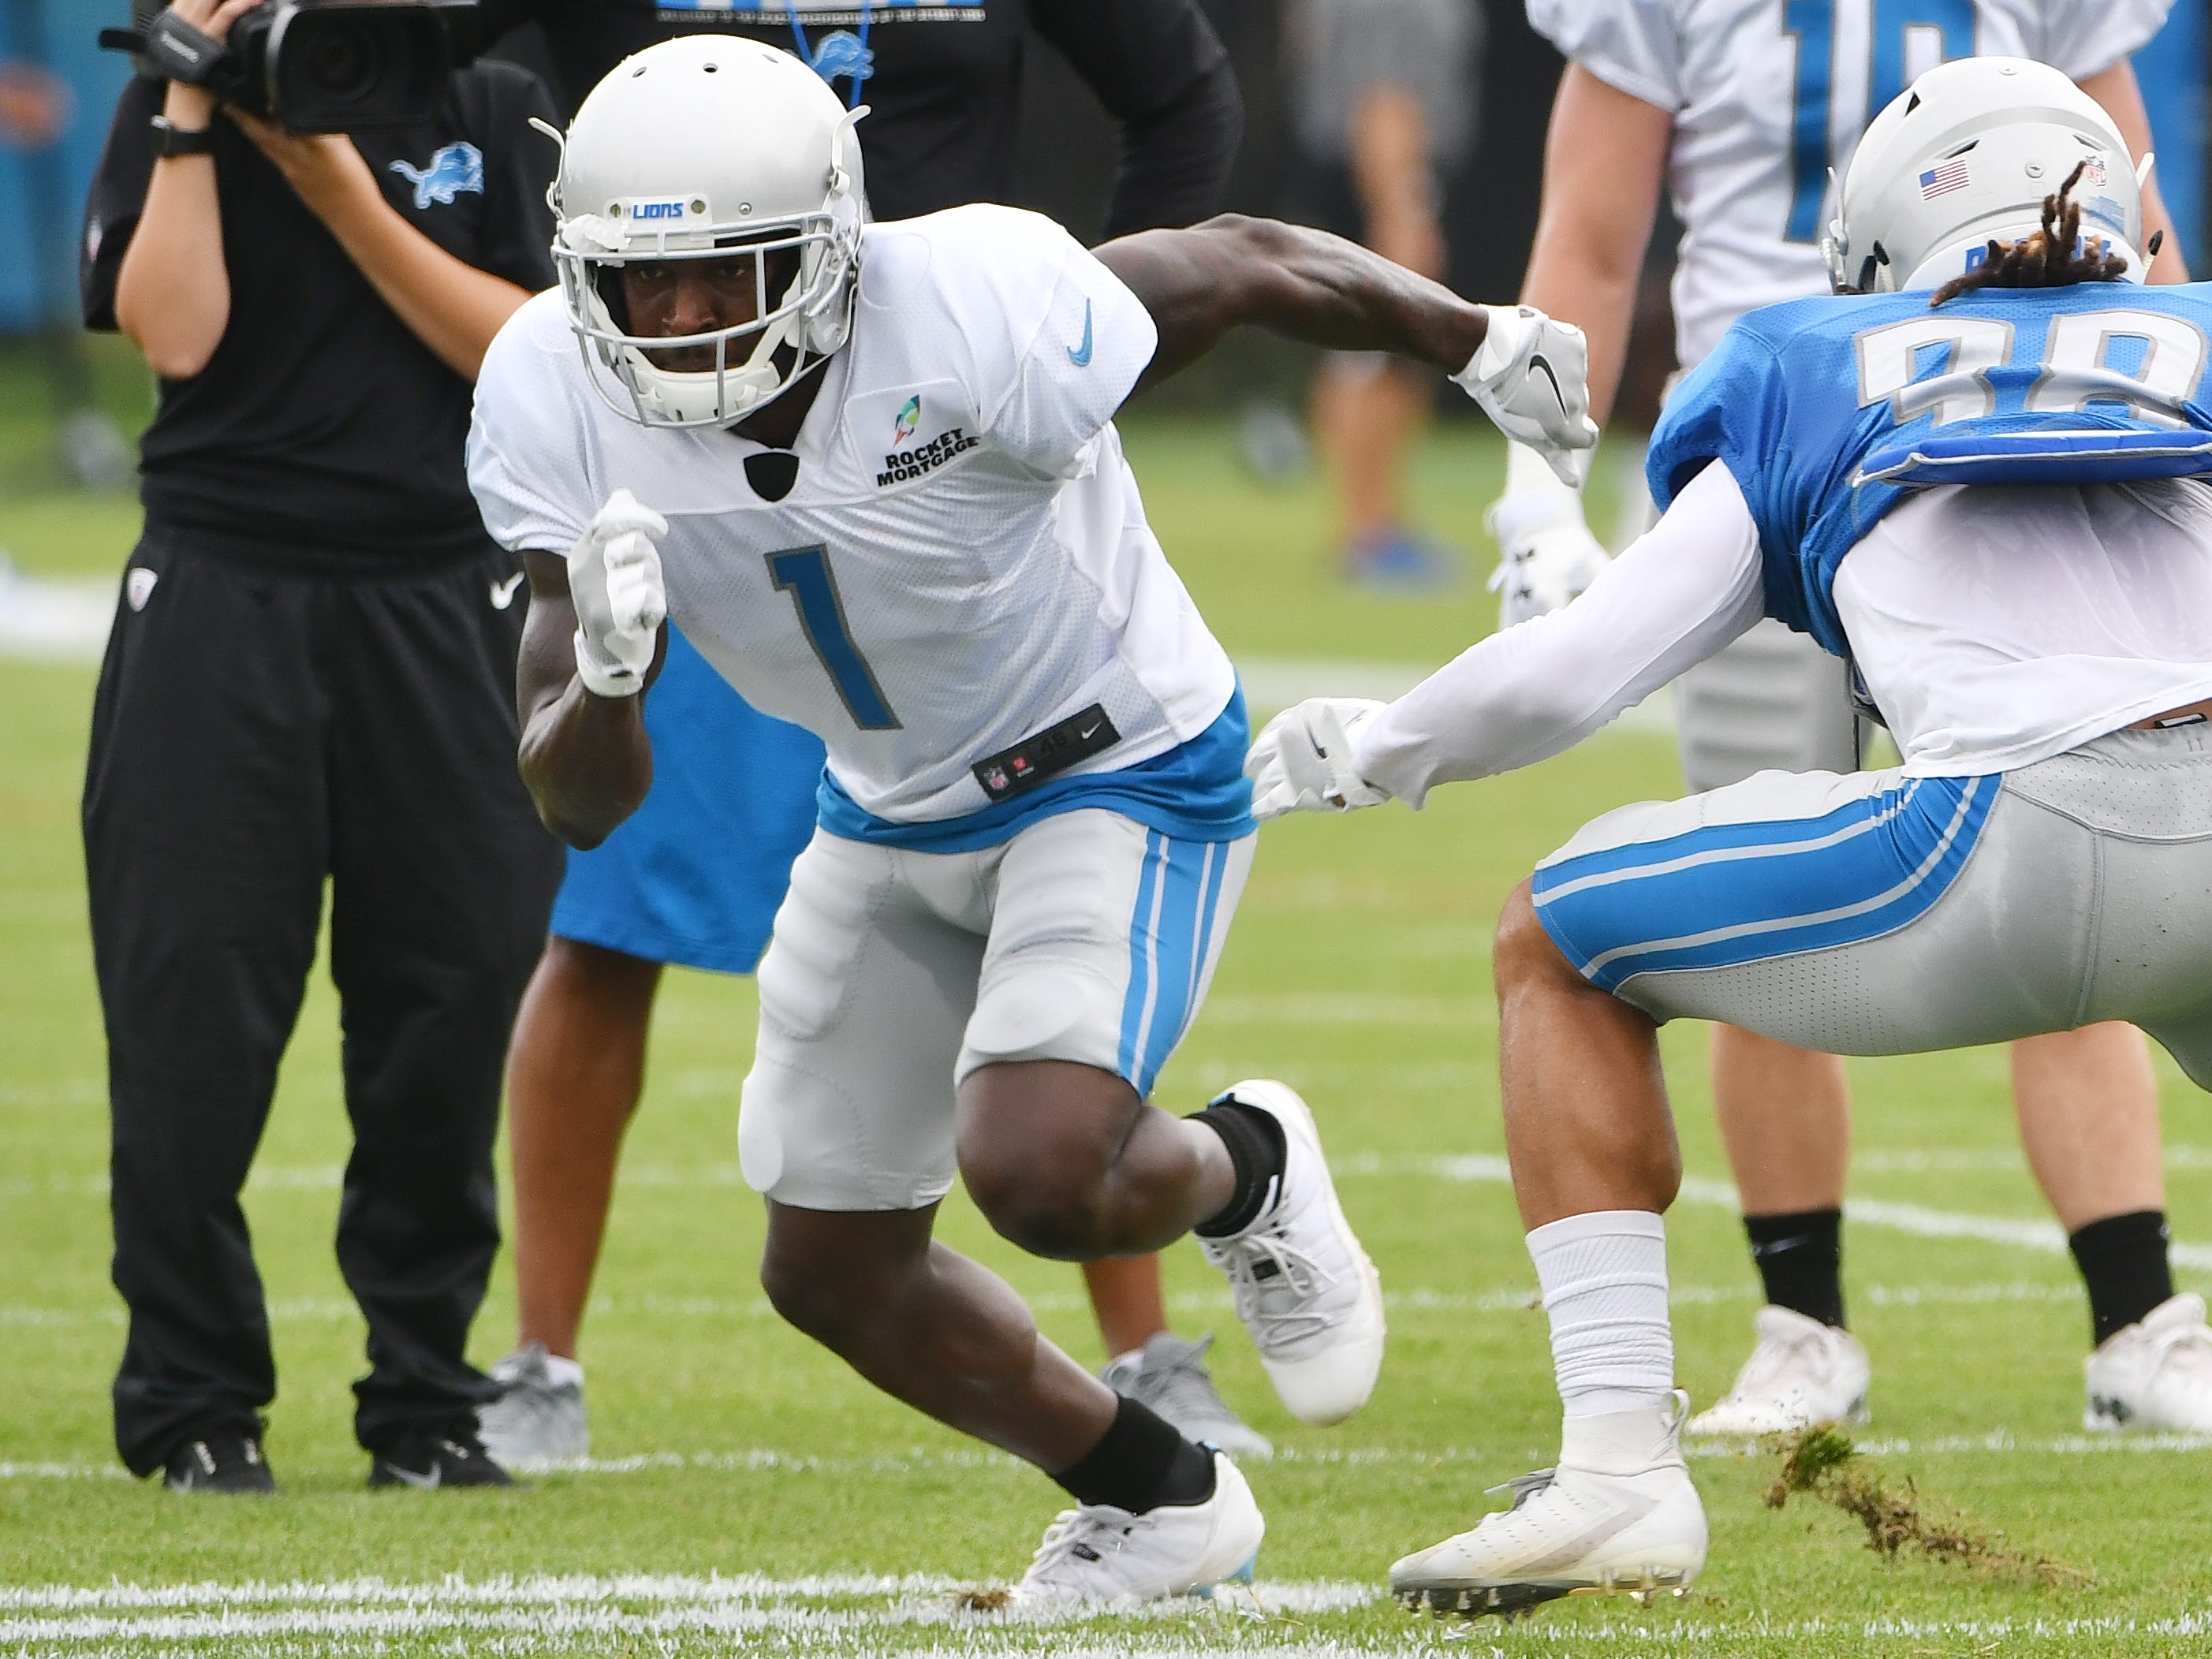 Lions wide receiver Brandon Powell and cornerback Mike Ford work during a drill involving bursting off the line of scrimmage against a defender.